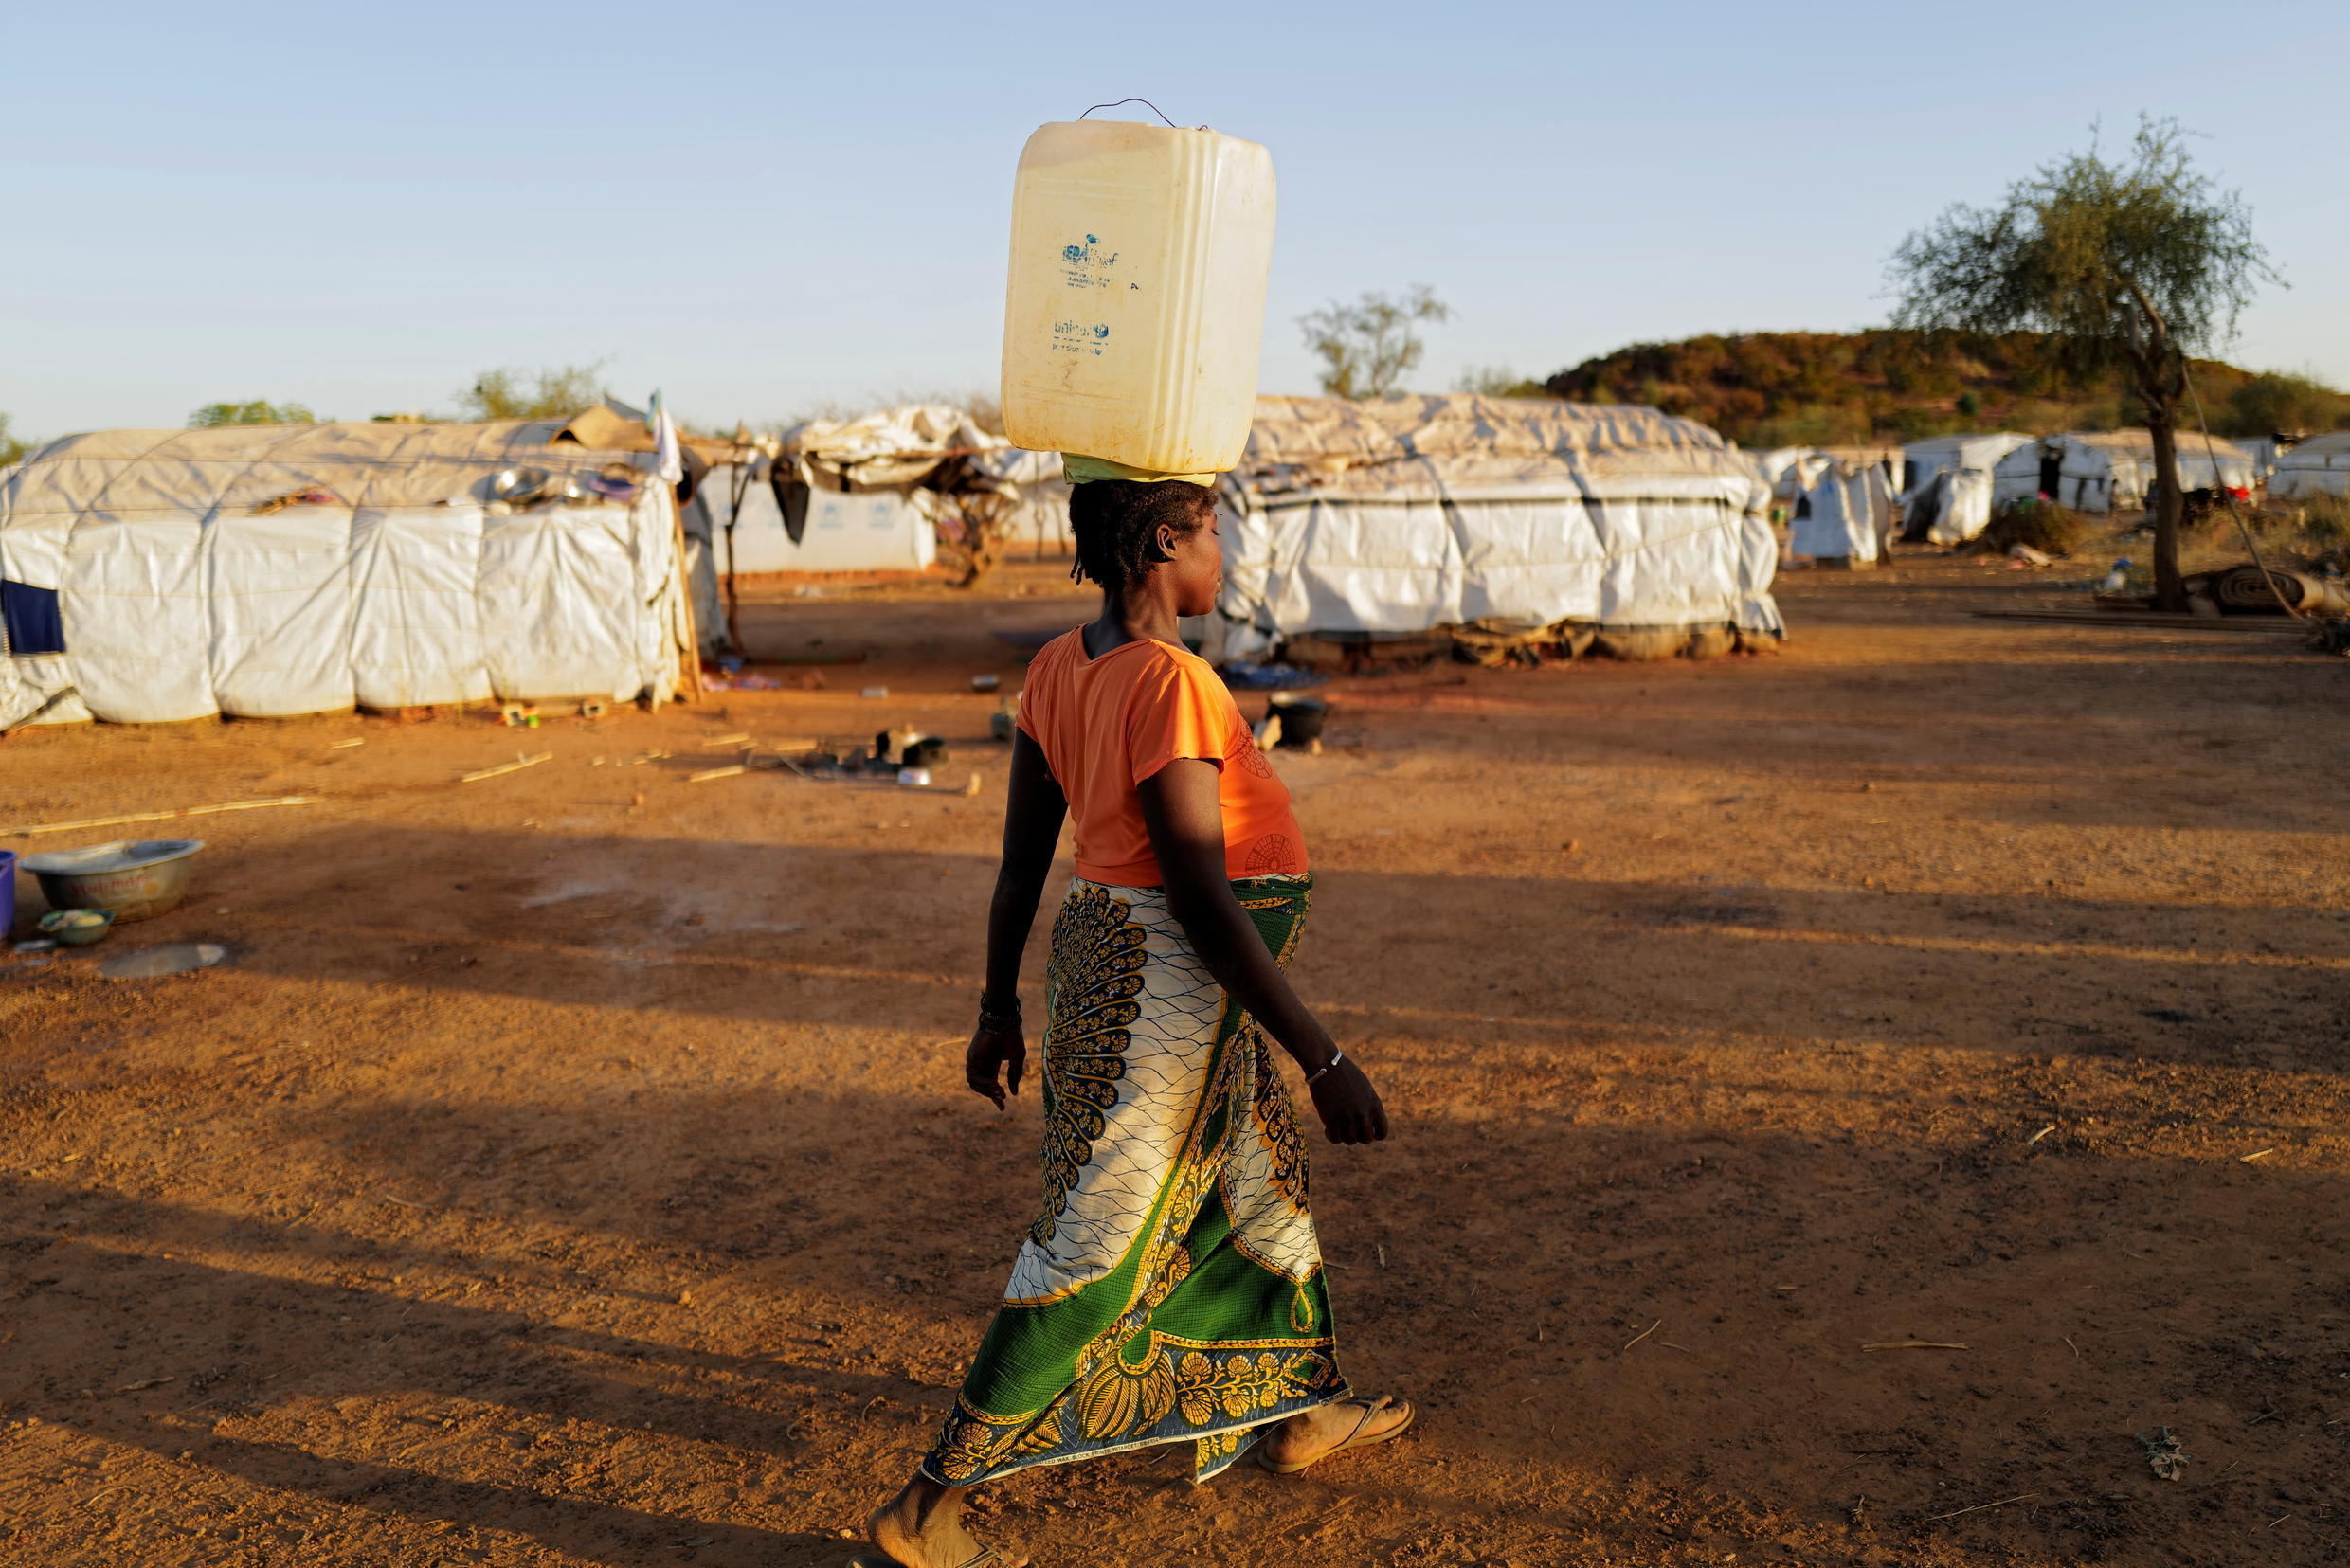 A pregnant woman carries a jerrycan of water at a camp for people displaced by conflict in Kaya, Burkina Faso.